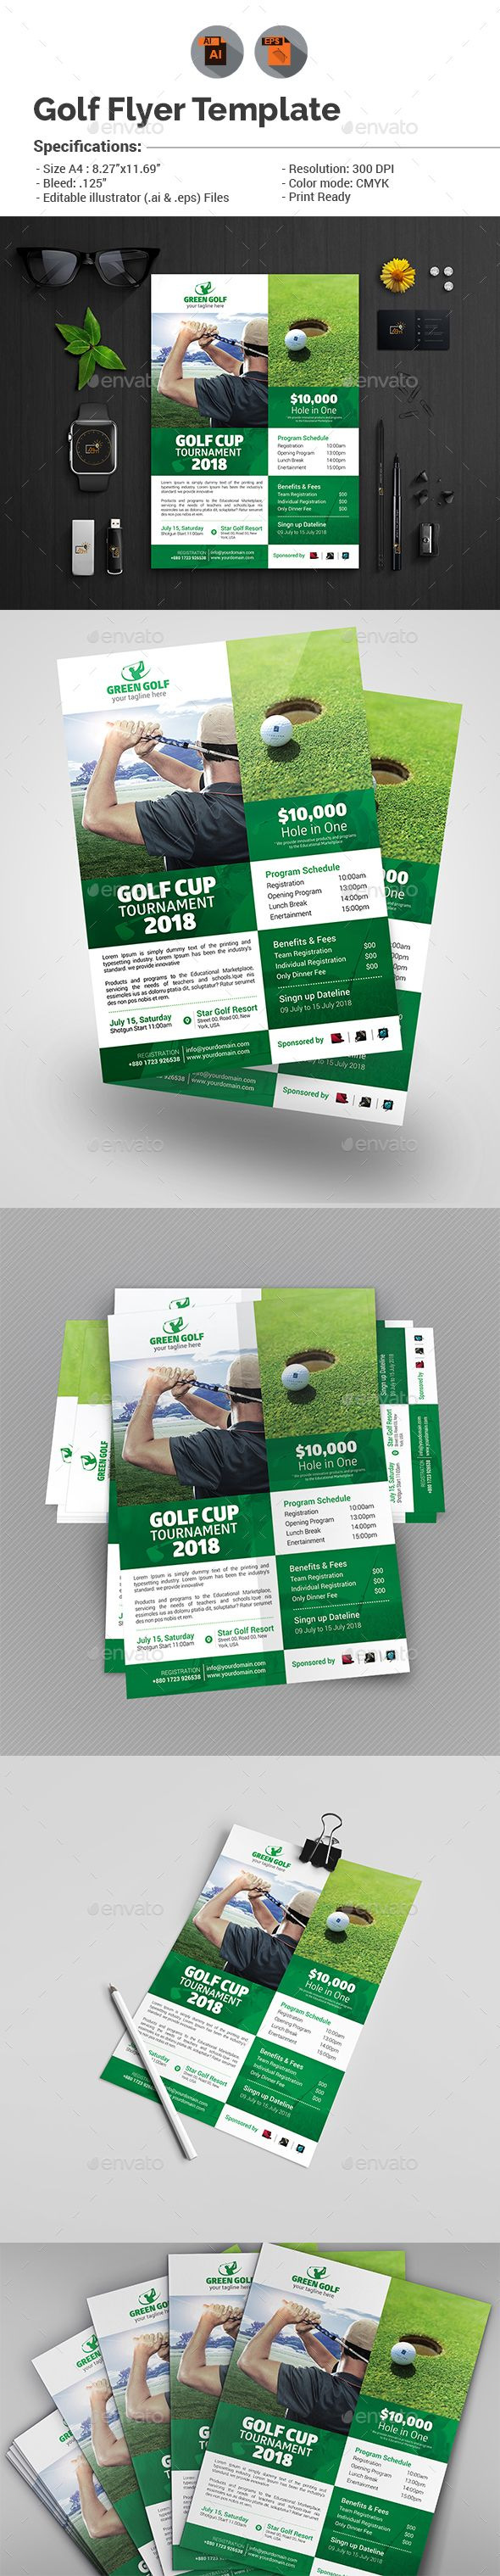 Golf Flyer Template V9 Flyer Template Golf And Template